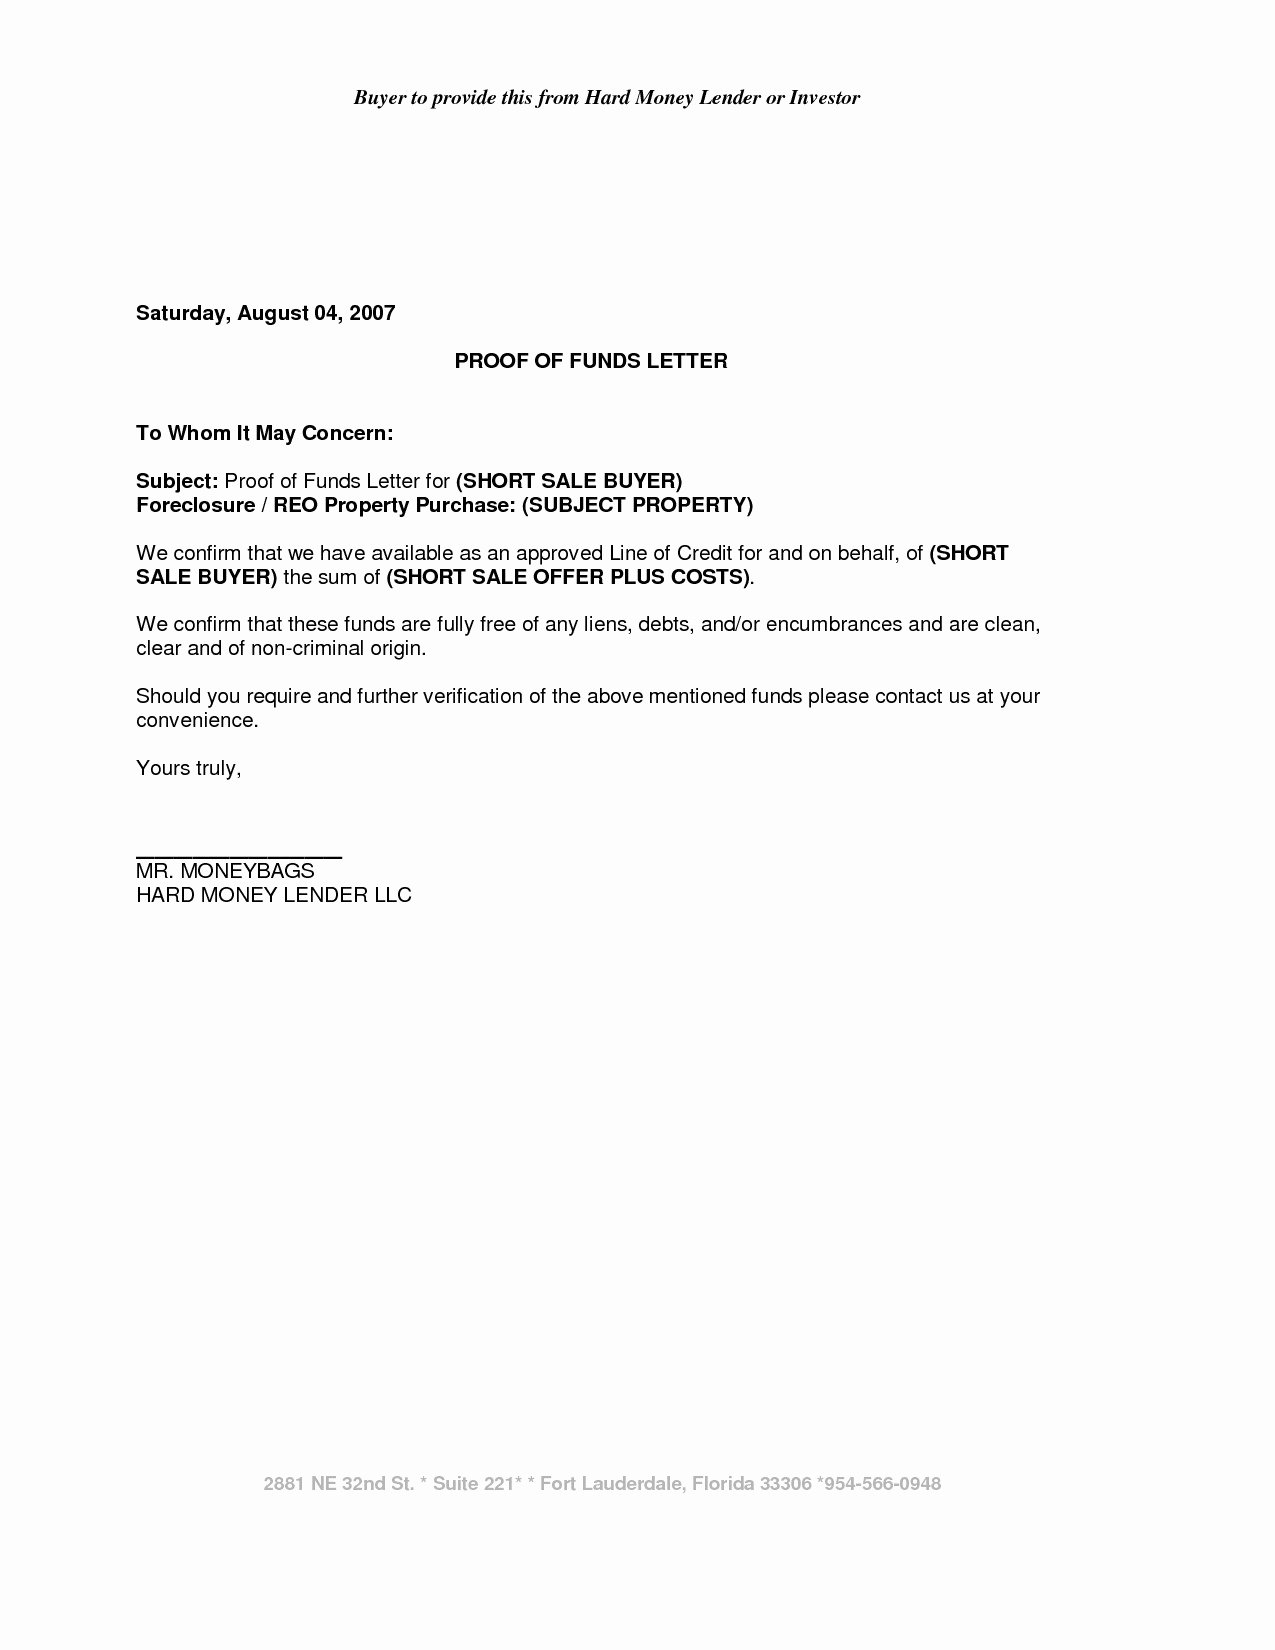 Proof Of Funds Letter Inspirational School Secretary Cover Letter Template Examples